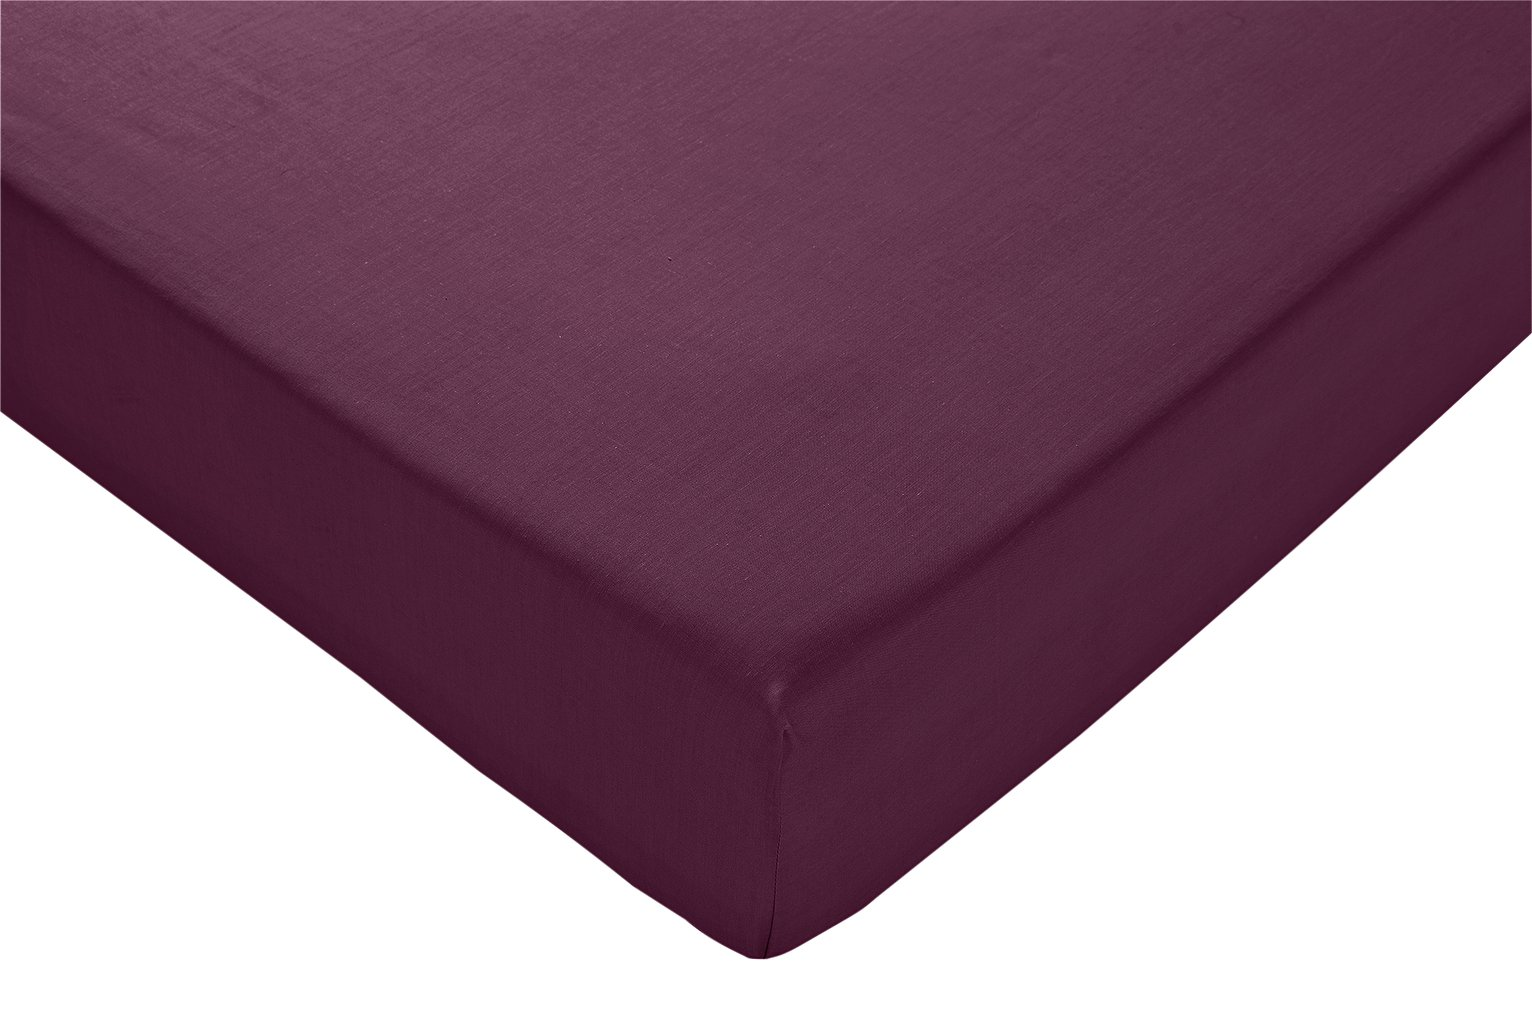 Argos Home Fig Cotton Rich Fitted Sheet - Kingsize